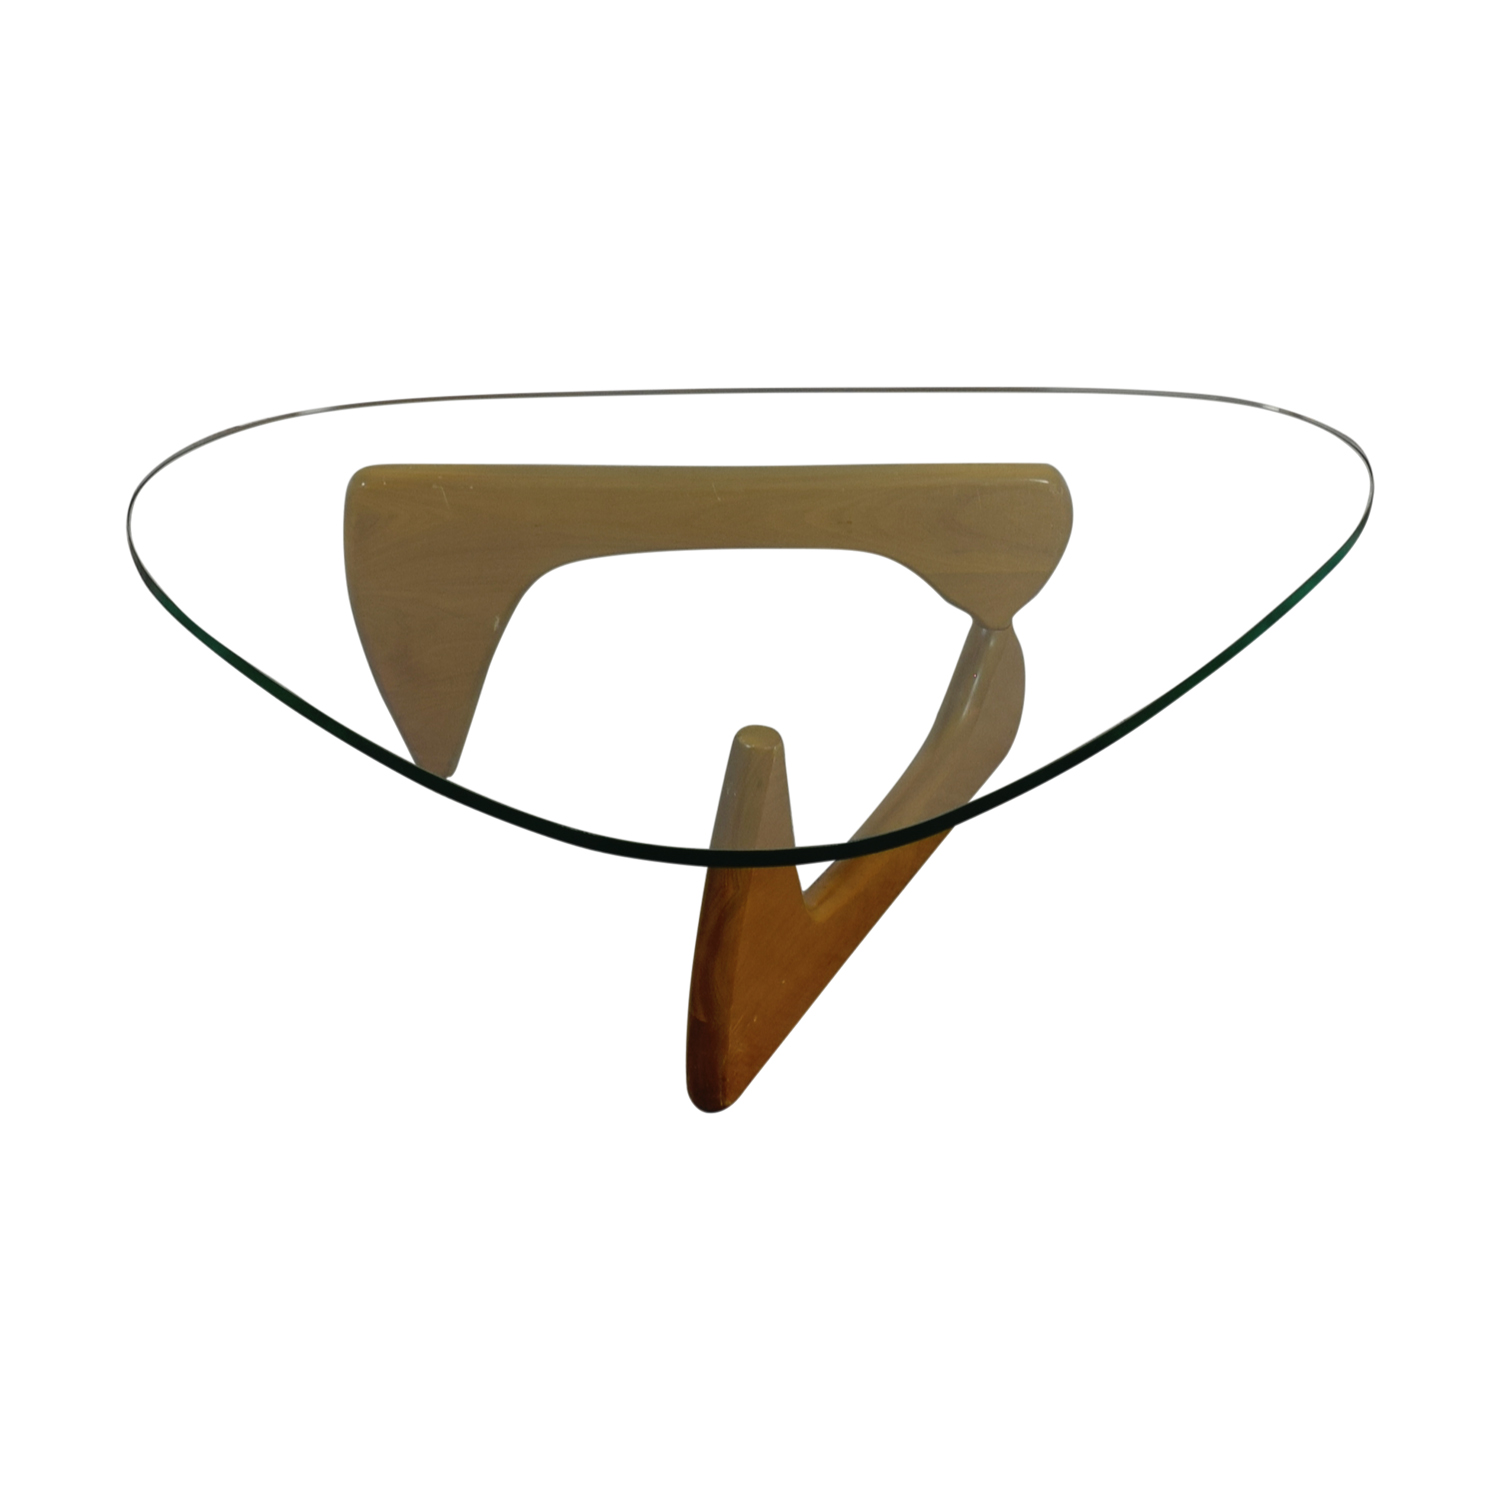 Noguchi Inspired Glass and Wood Table dimensions